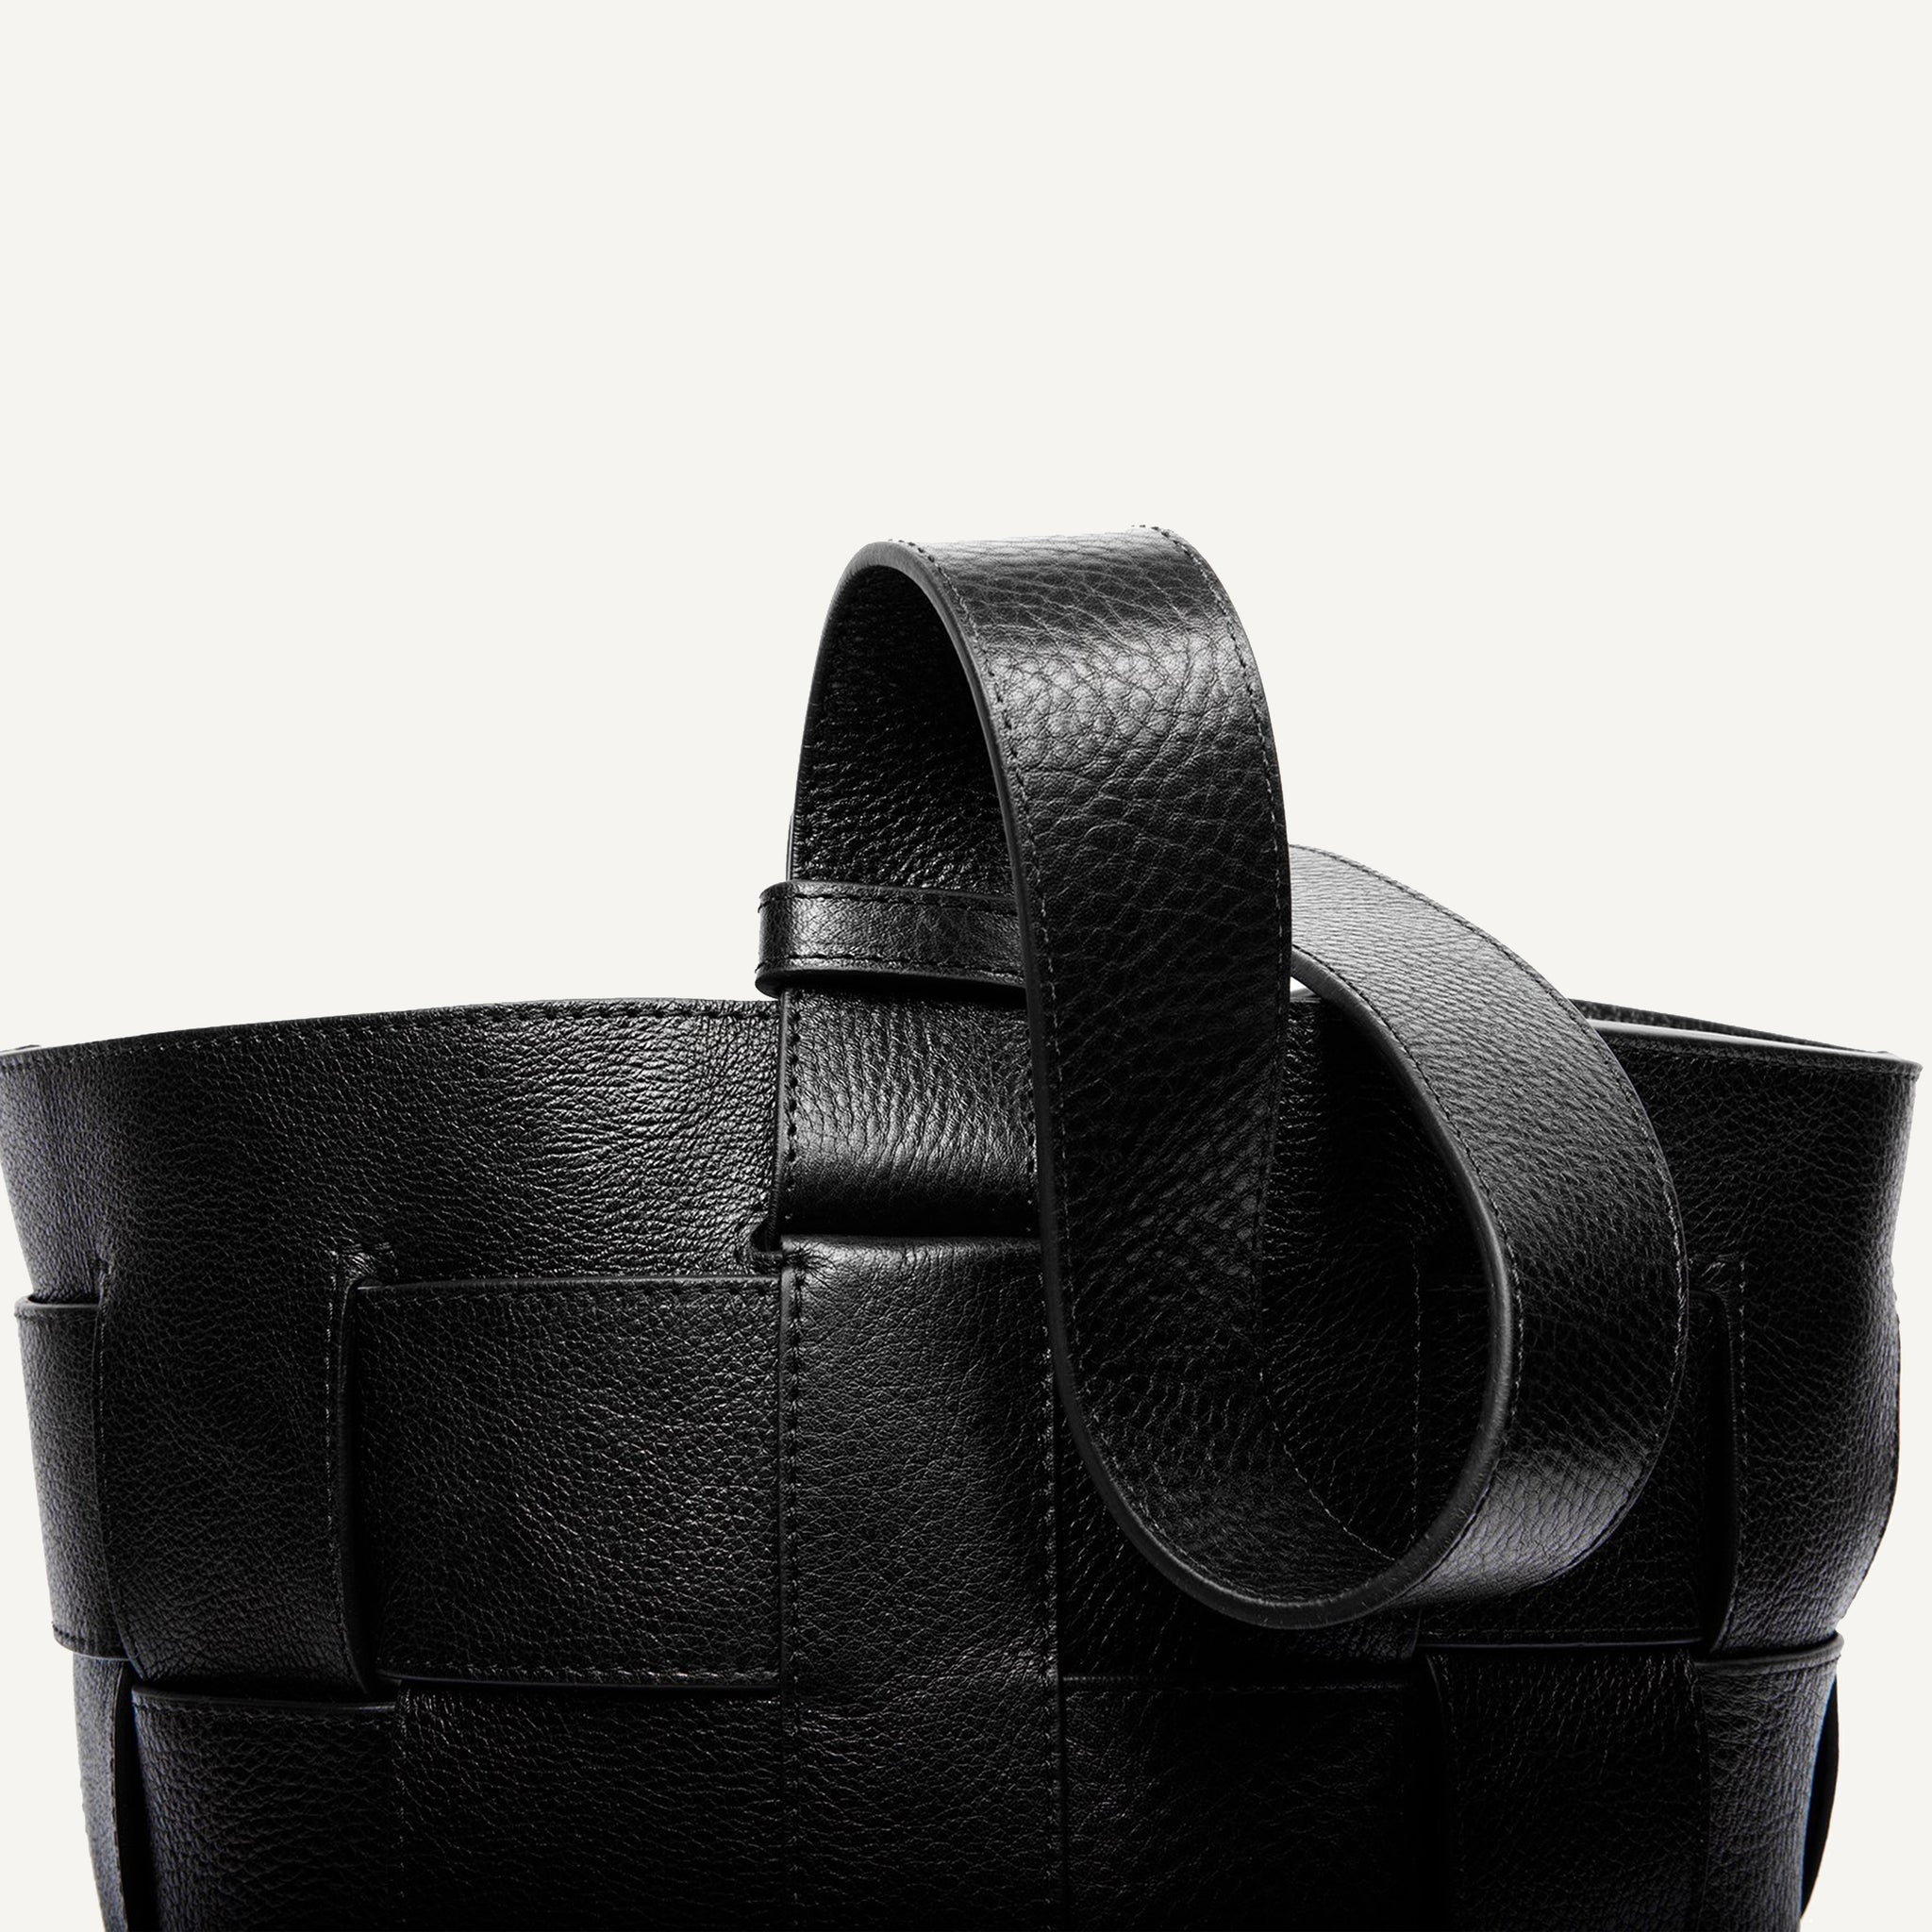 LOTUFF WOVEN LEATHER BUCKET SHOULDER BAG